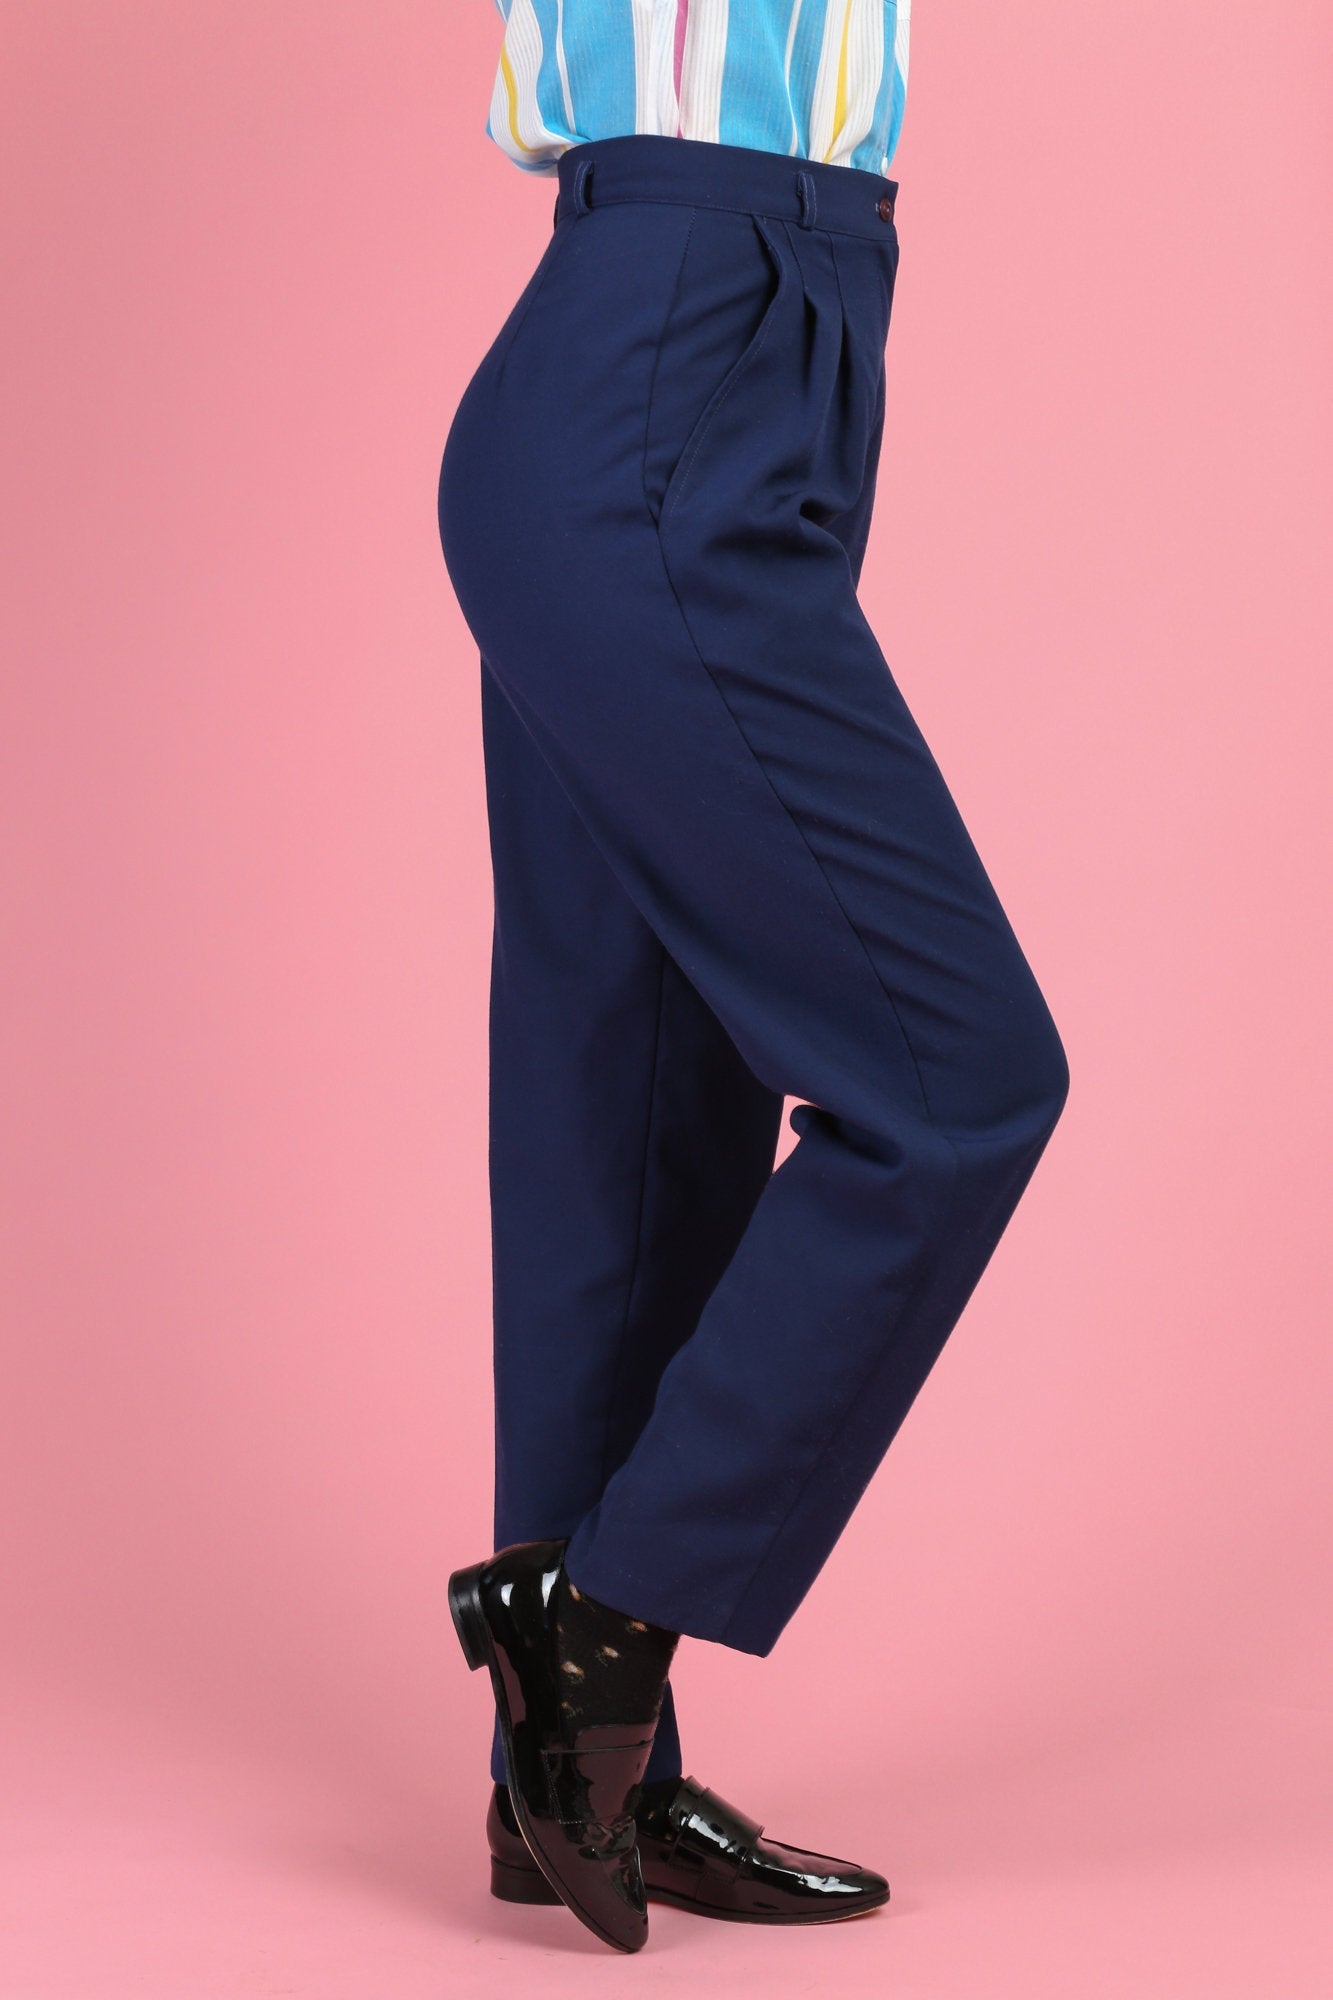 80s Navy Blue High Waist Trousers - Small, 27""